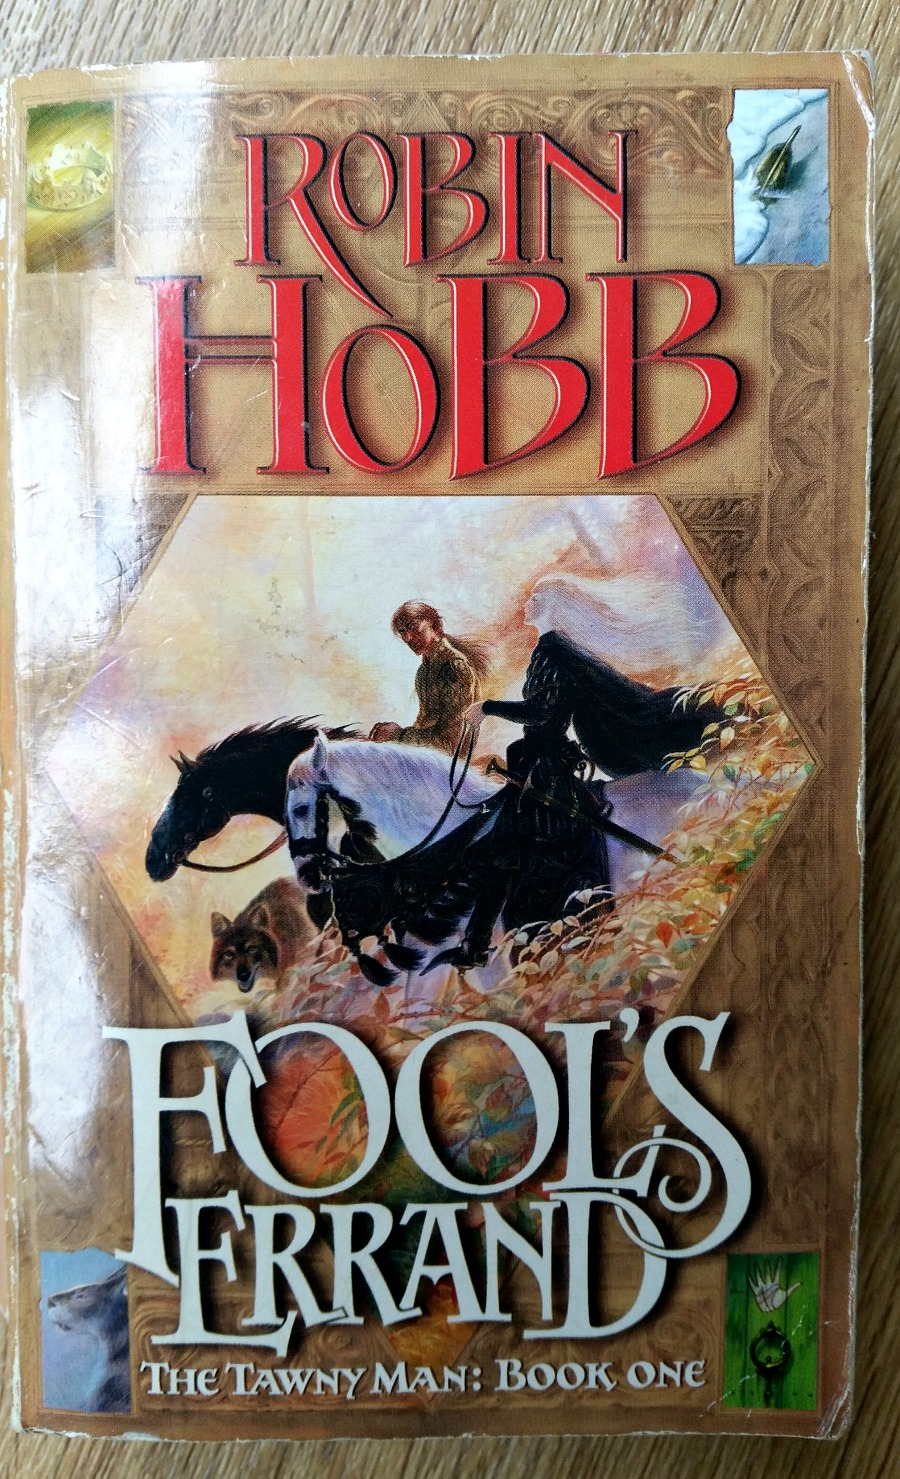 Fools Errand by Robin Hobb. First book in The Tawny Man Trilogy. Circle of Daydreams. www.circleofdaydreams.com